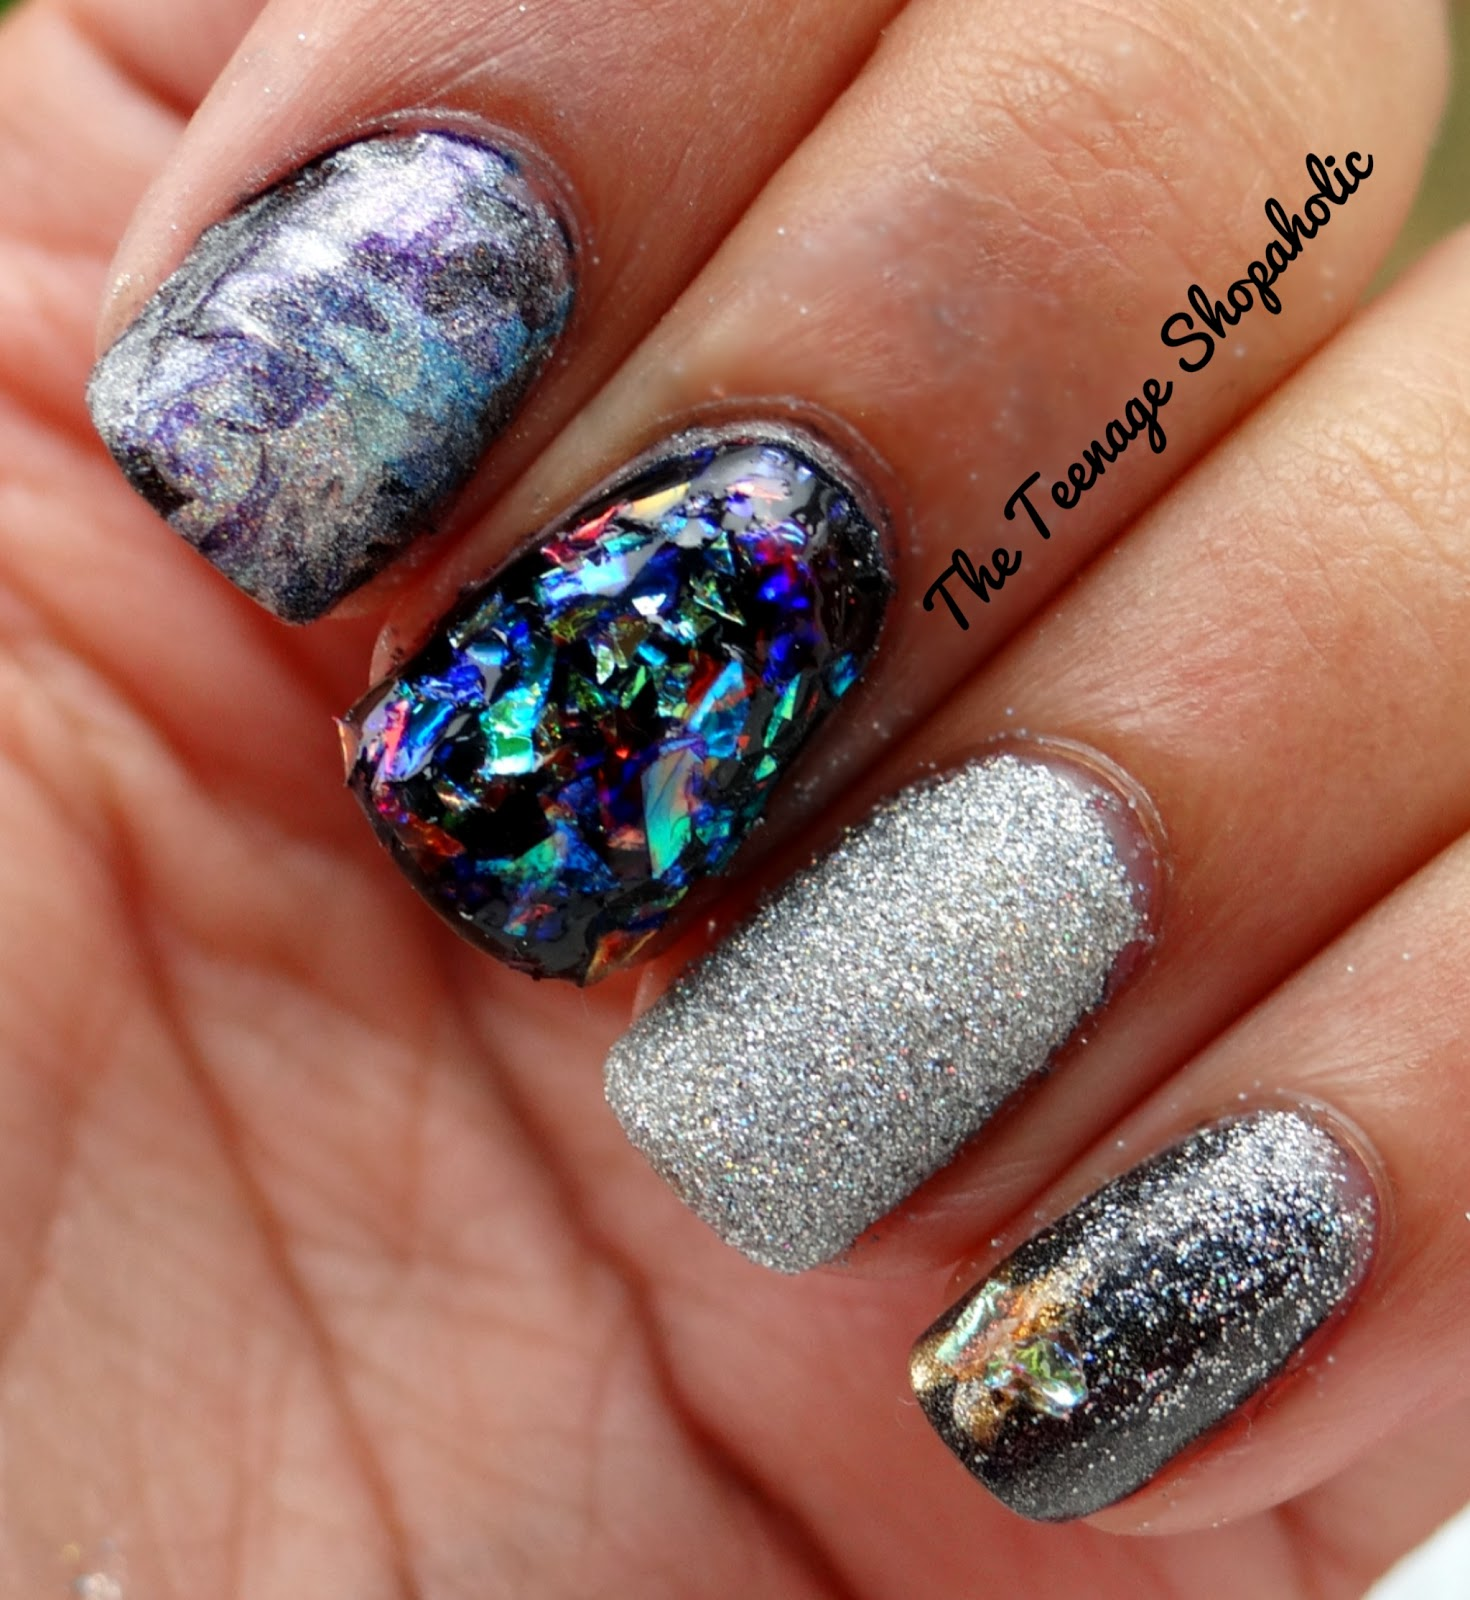 Diva\'s Diary: 31 Days of Nail Art Challenge - Day 29 - Inspired by ...